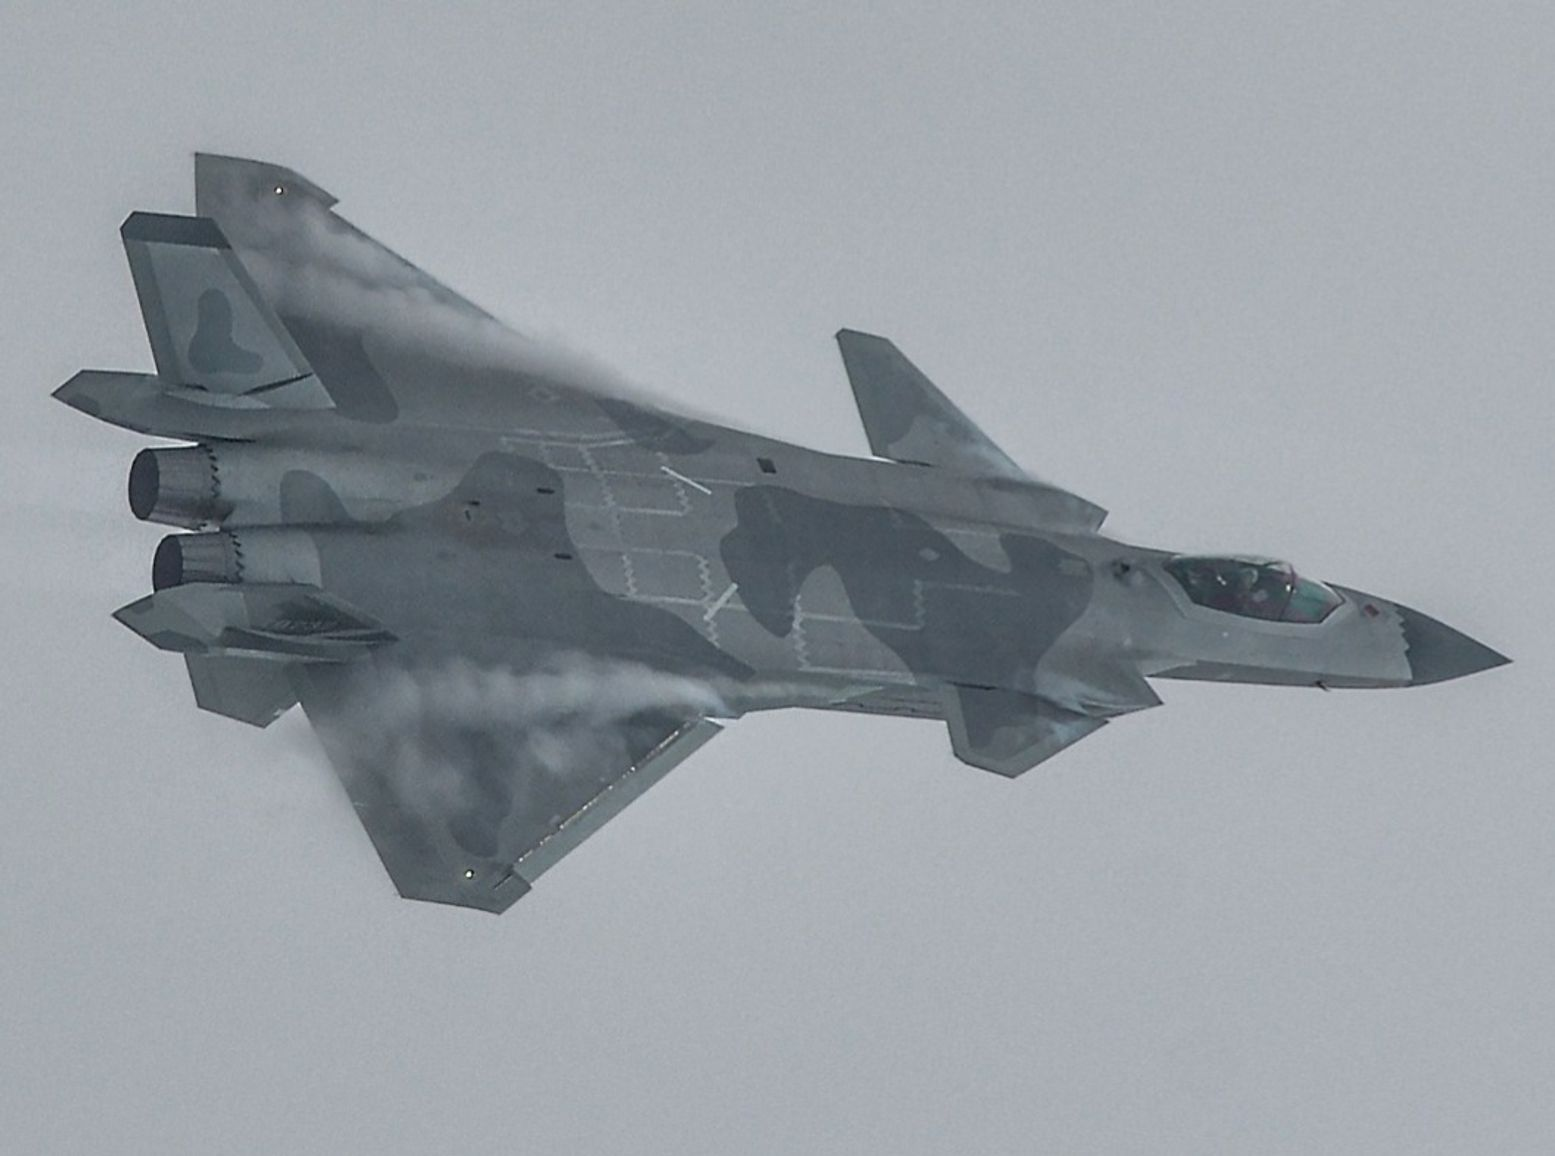 China's J-20 Stealth Fighter Is Built on Stolen F-35 Technology